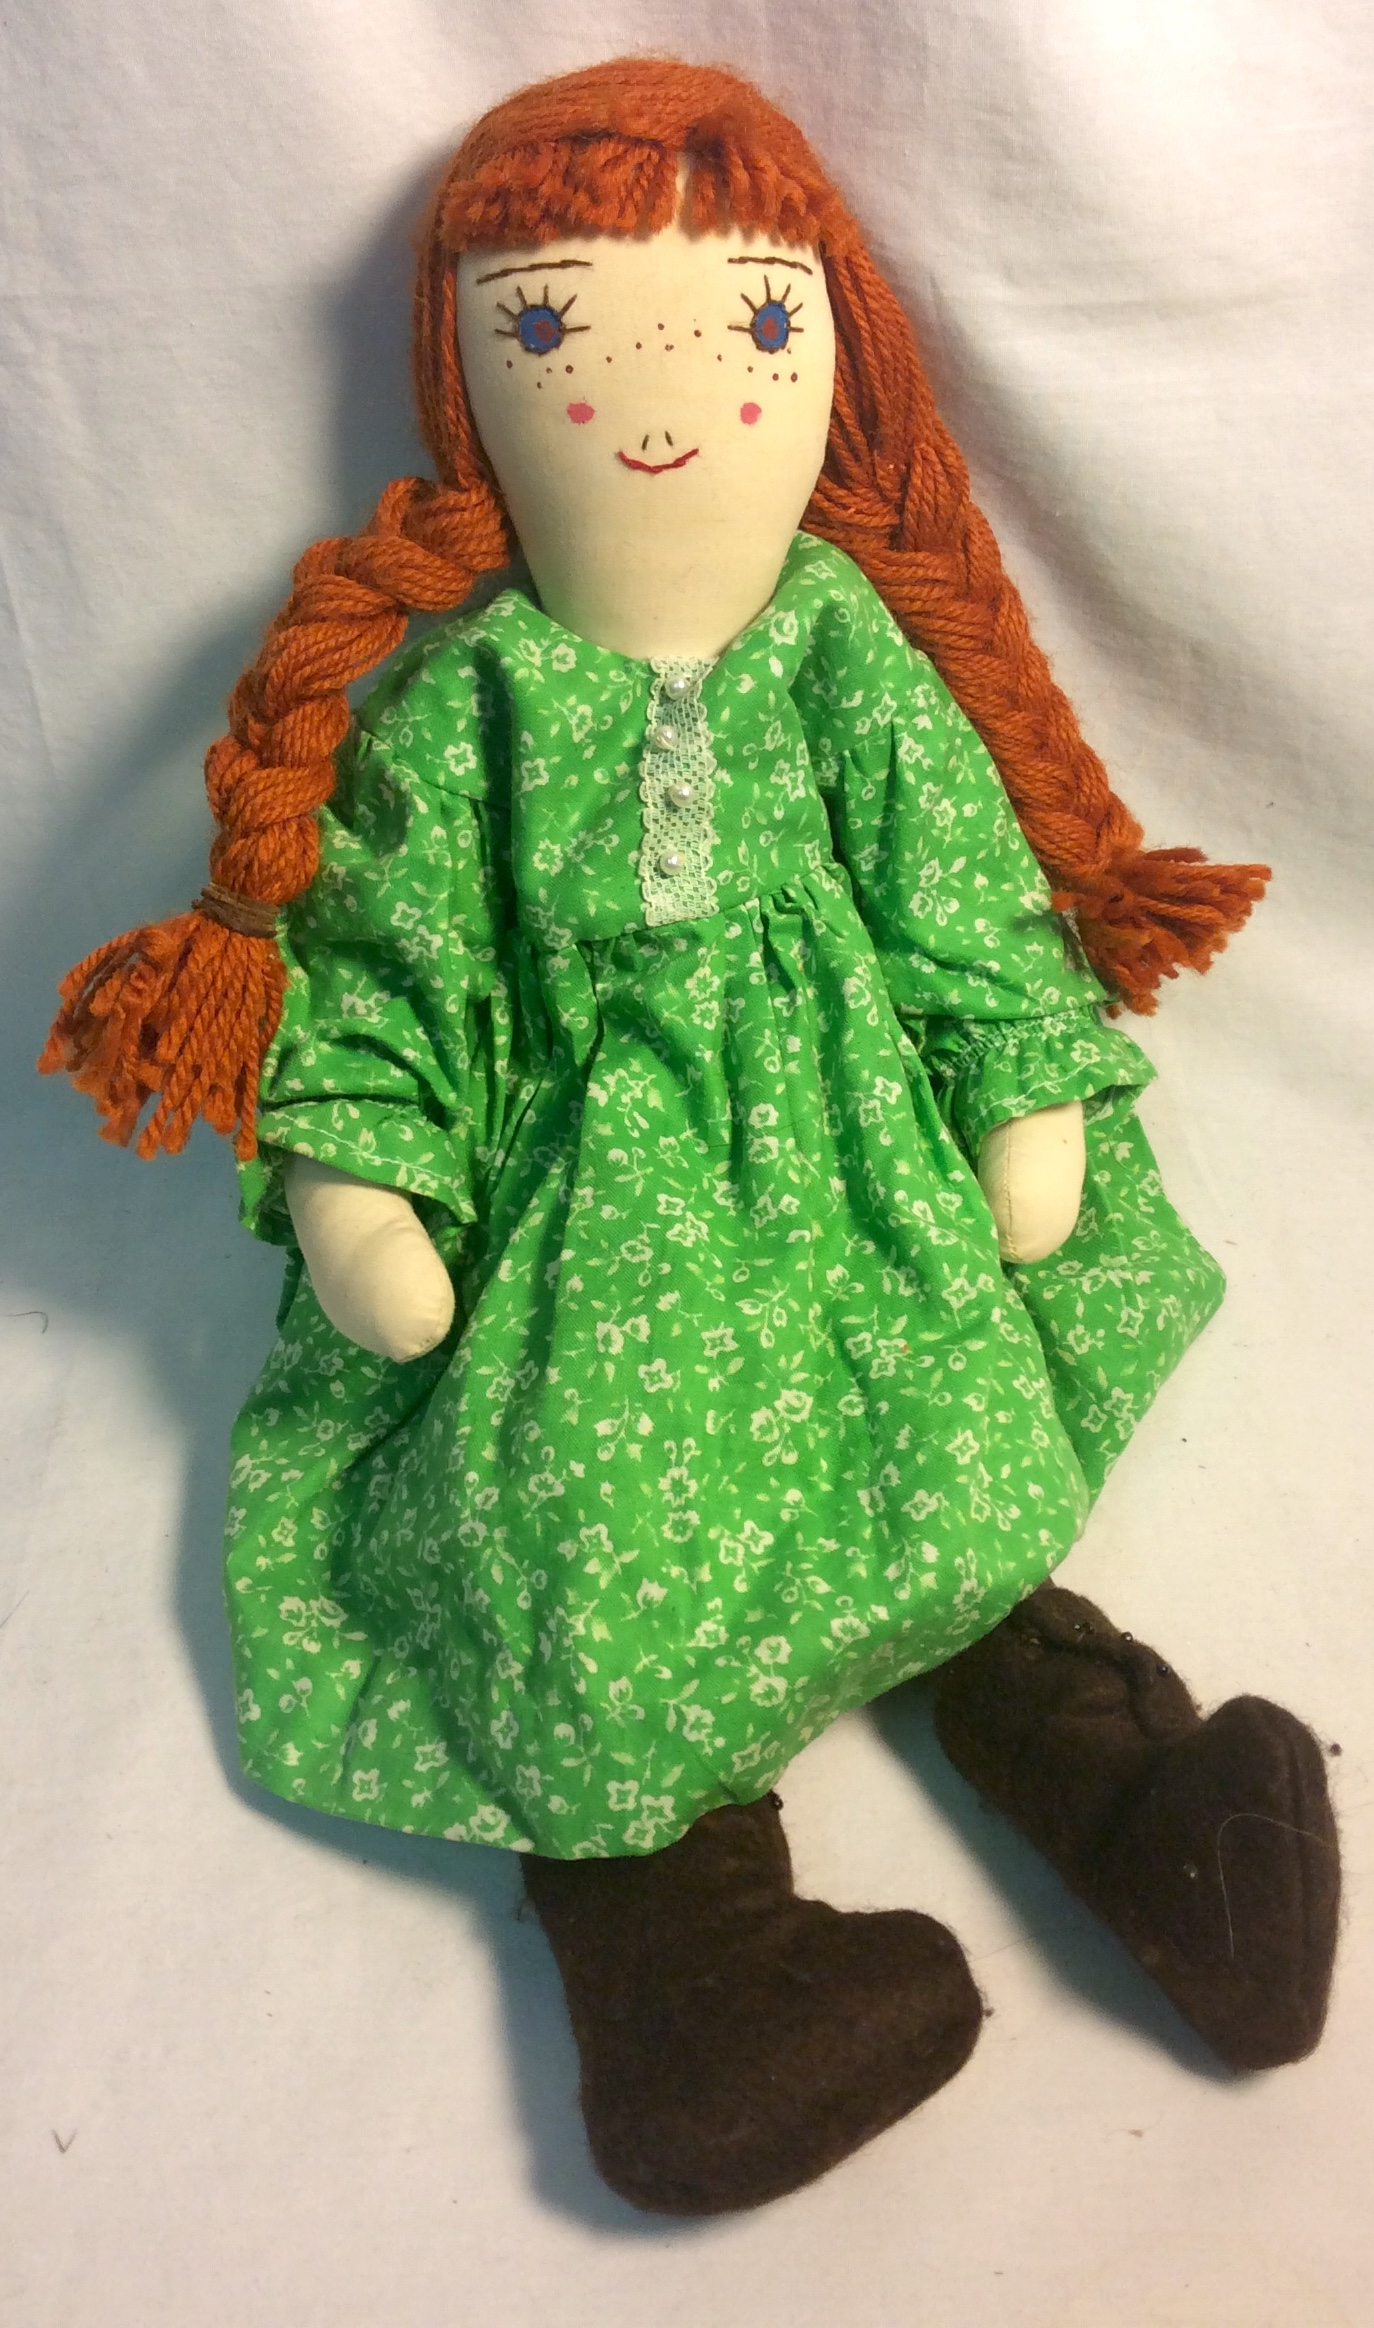 Village Craft House Vintage-style, stuffed cloth doll with green dress and orange yarn hair